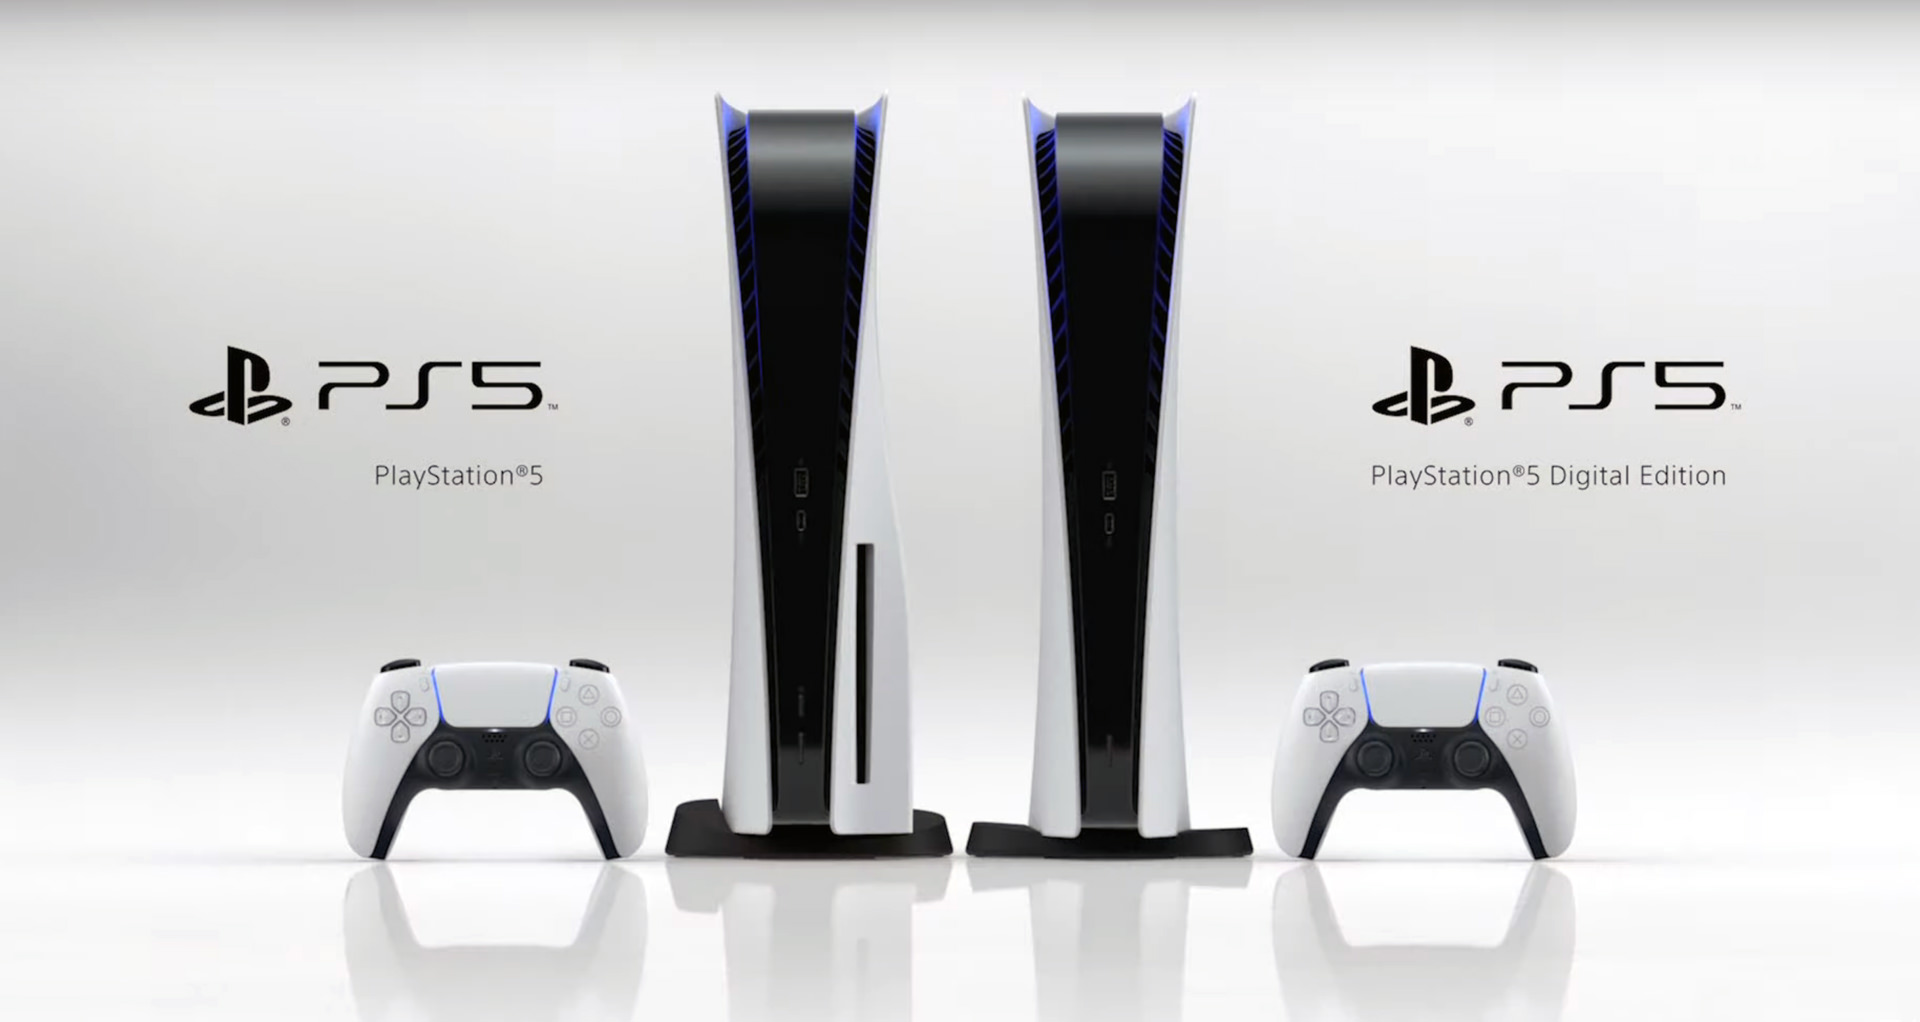 Playstation 5 Digital Edition